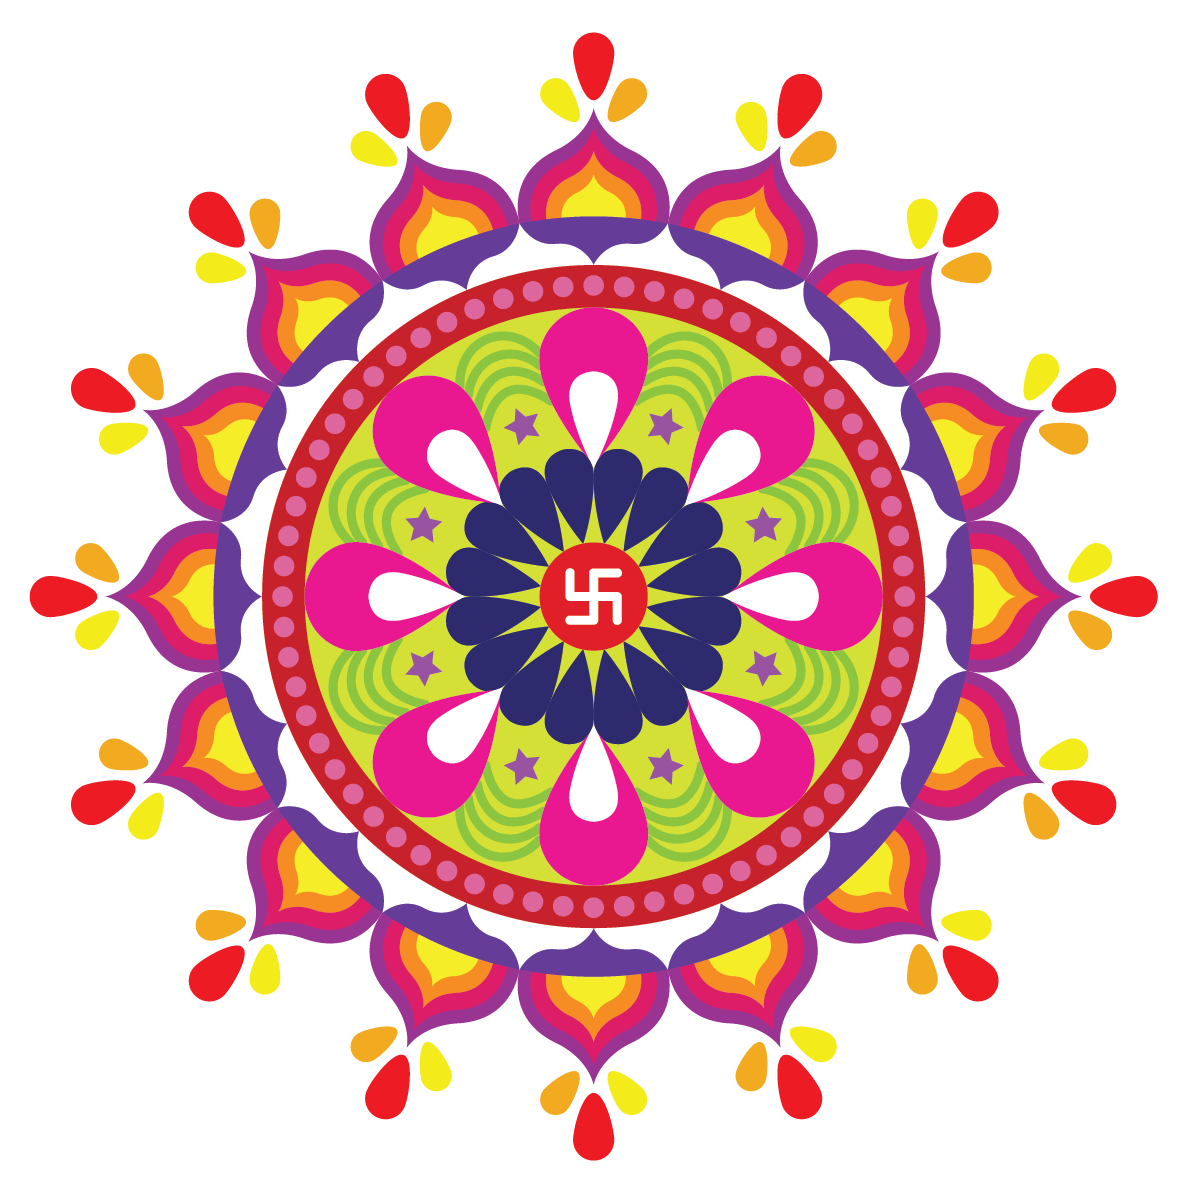 Symmetry in our daily life - Rangolis include symmetrical patterns in them.